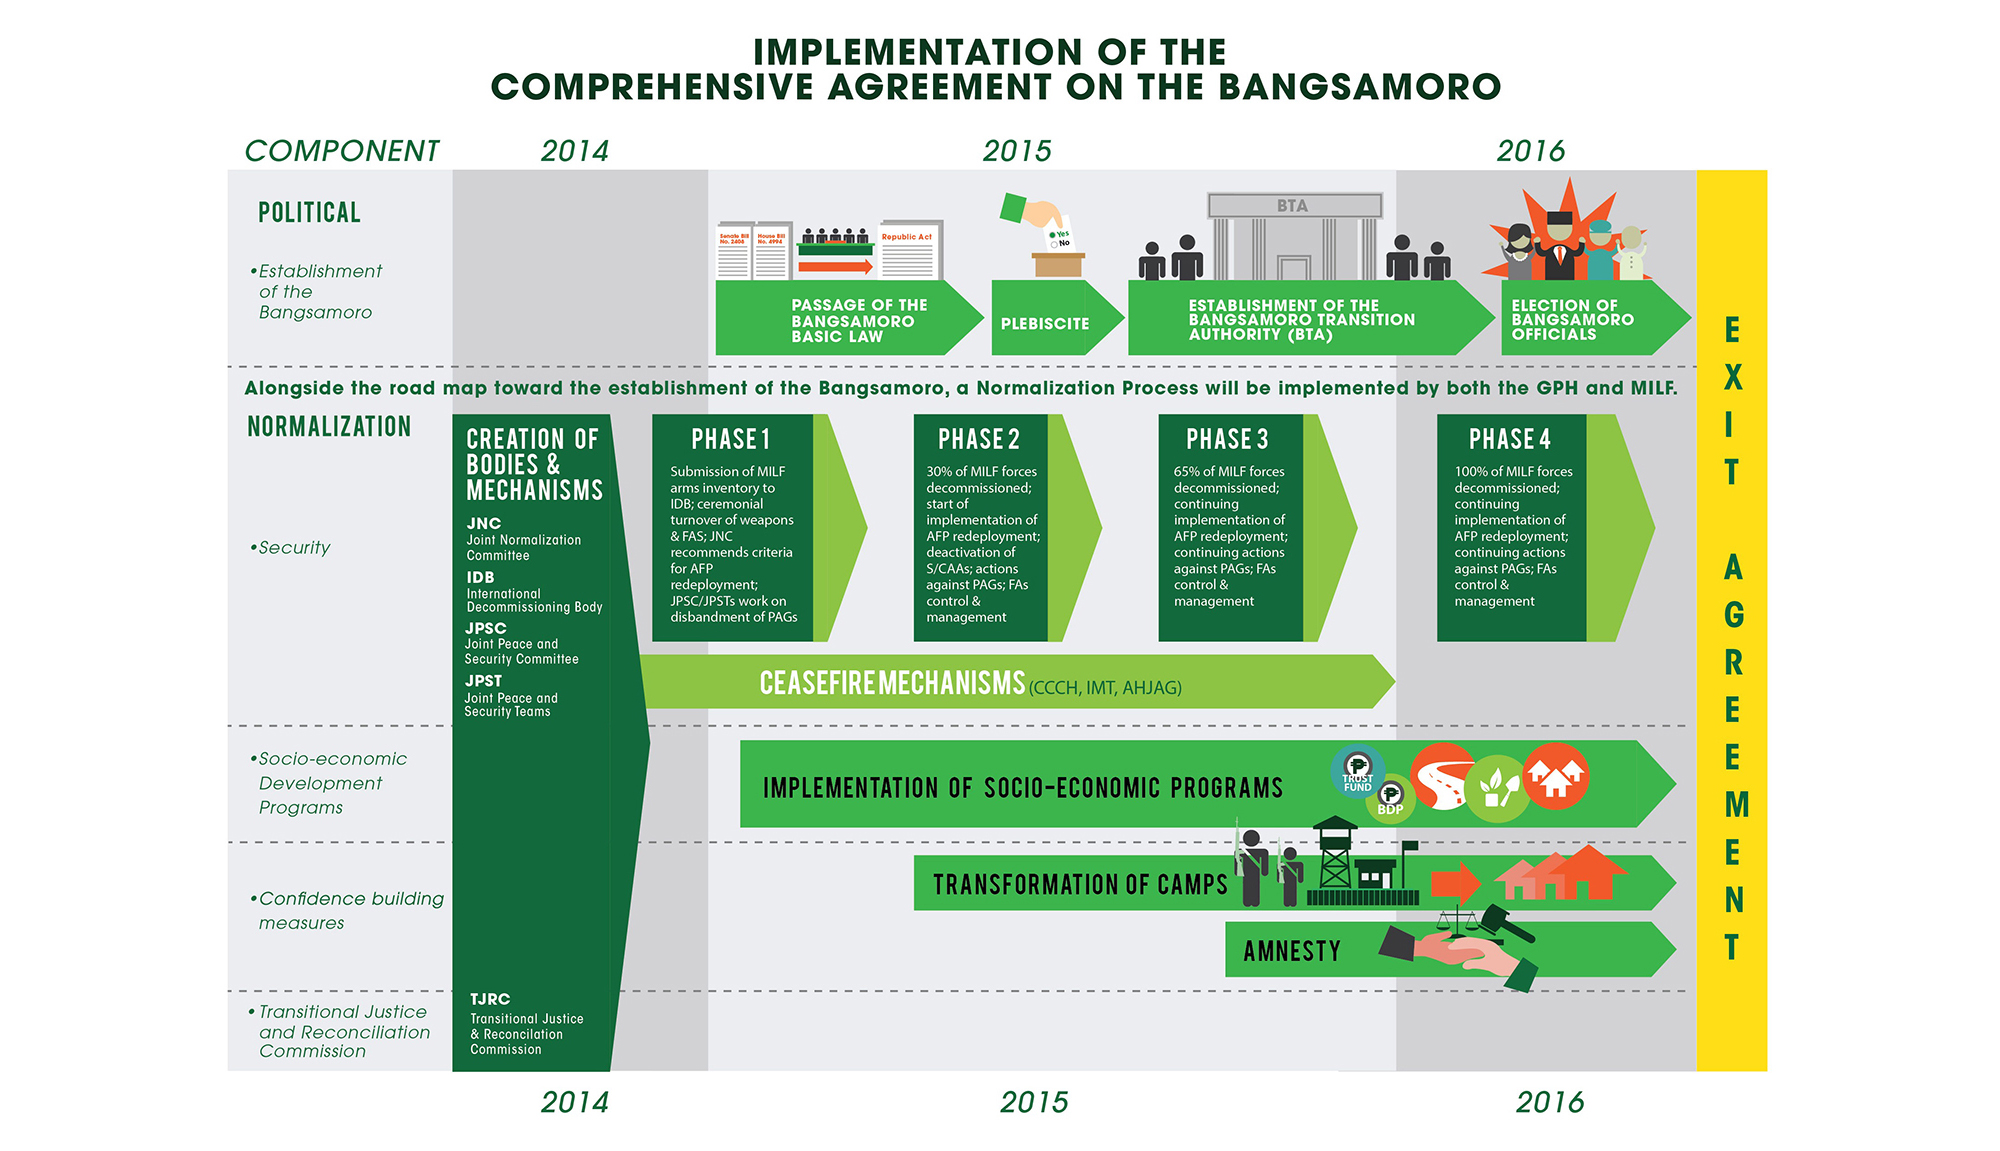 implementation-comprehensive-agreement-bangsamoro sm.jpg